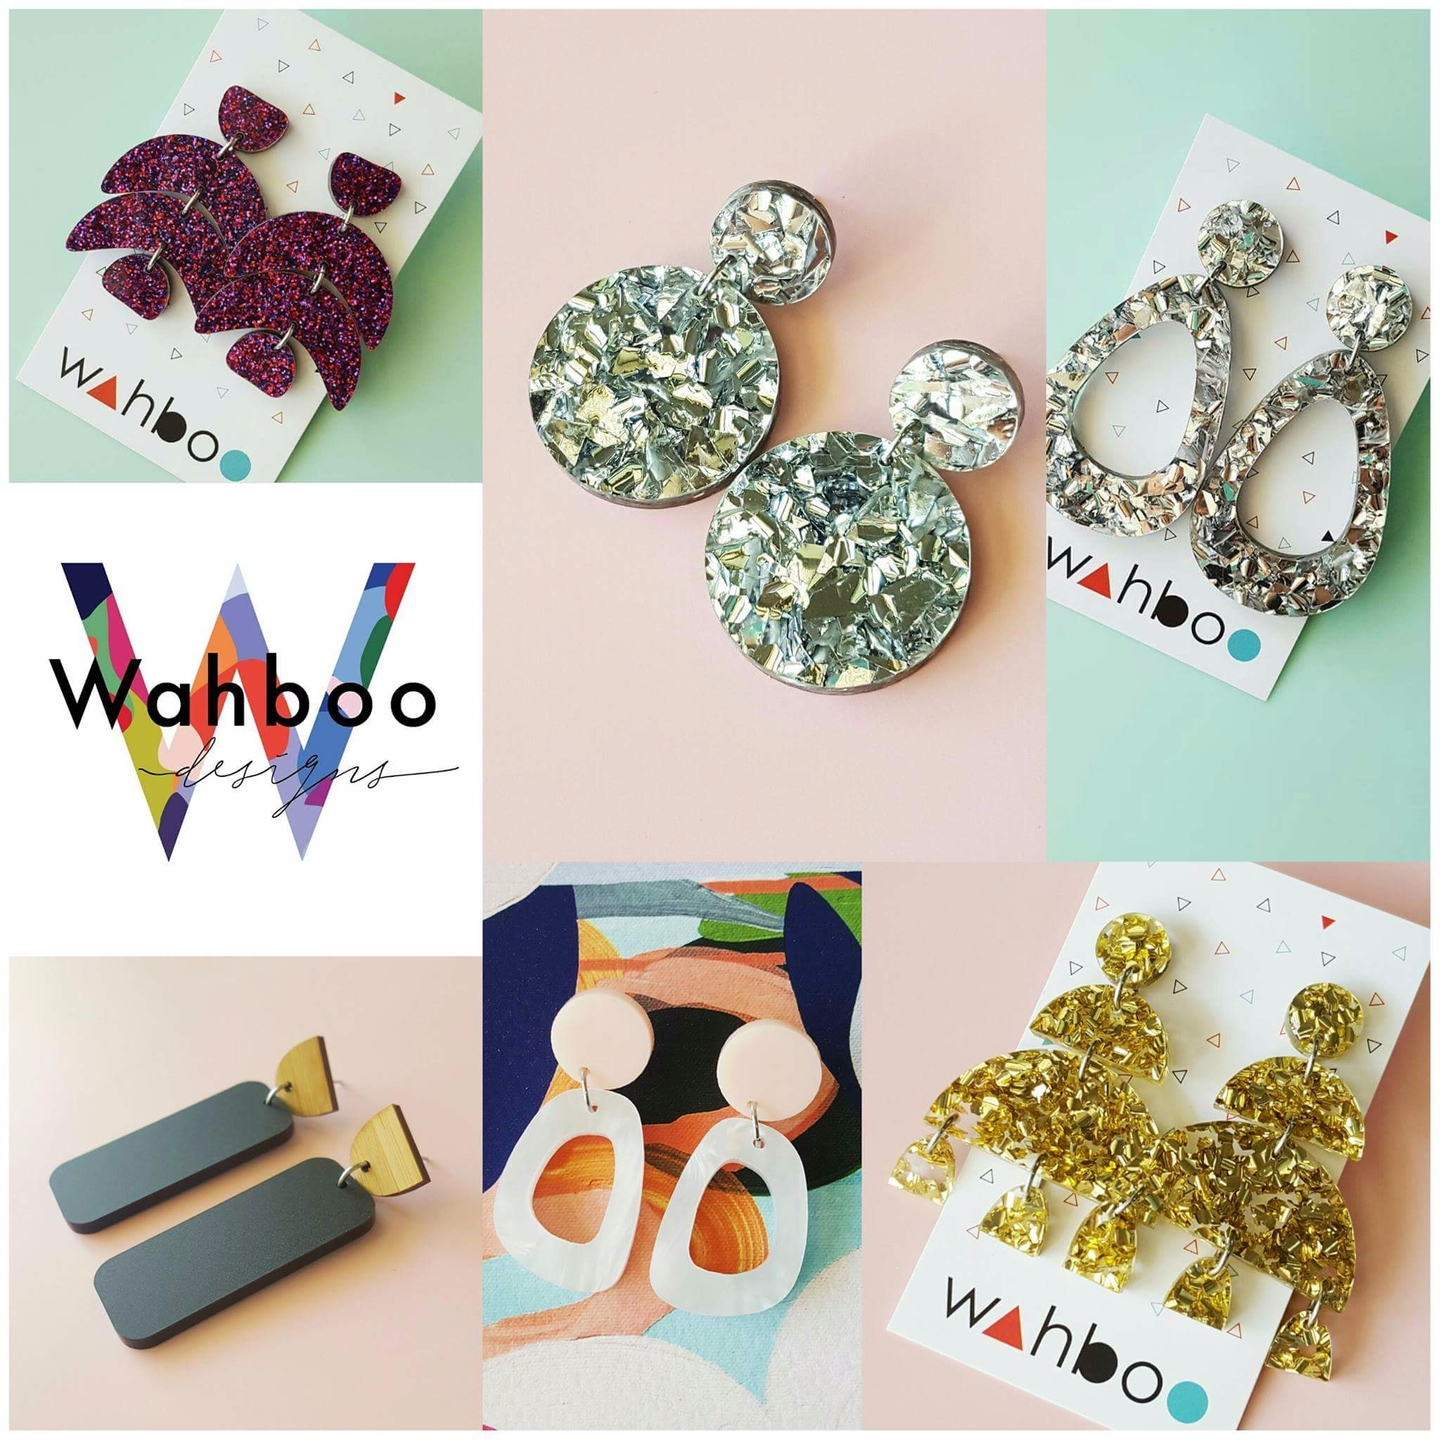 Wahboo Designs (@wahboodesigns) Cover Image